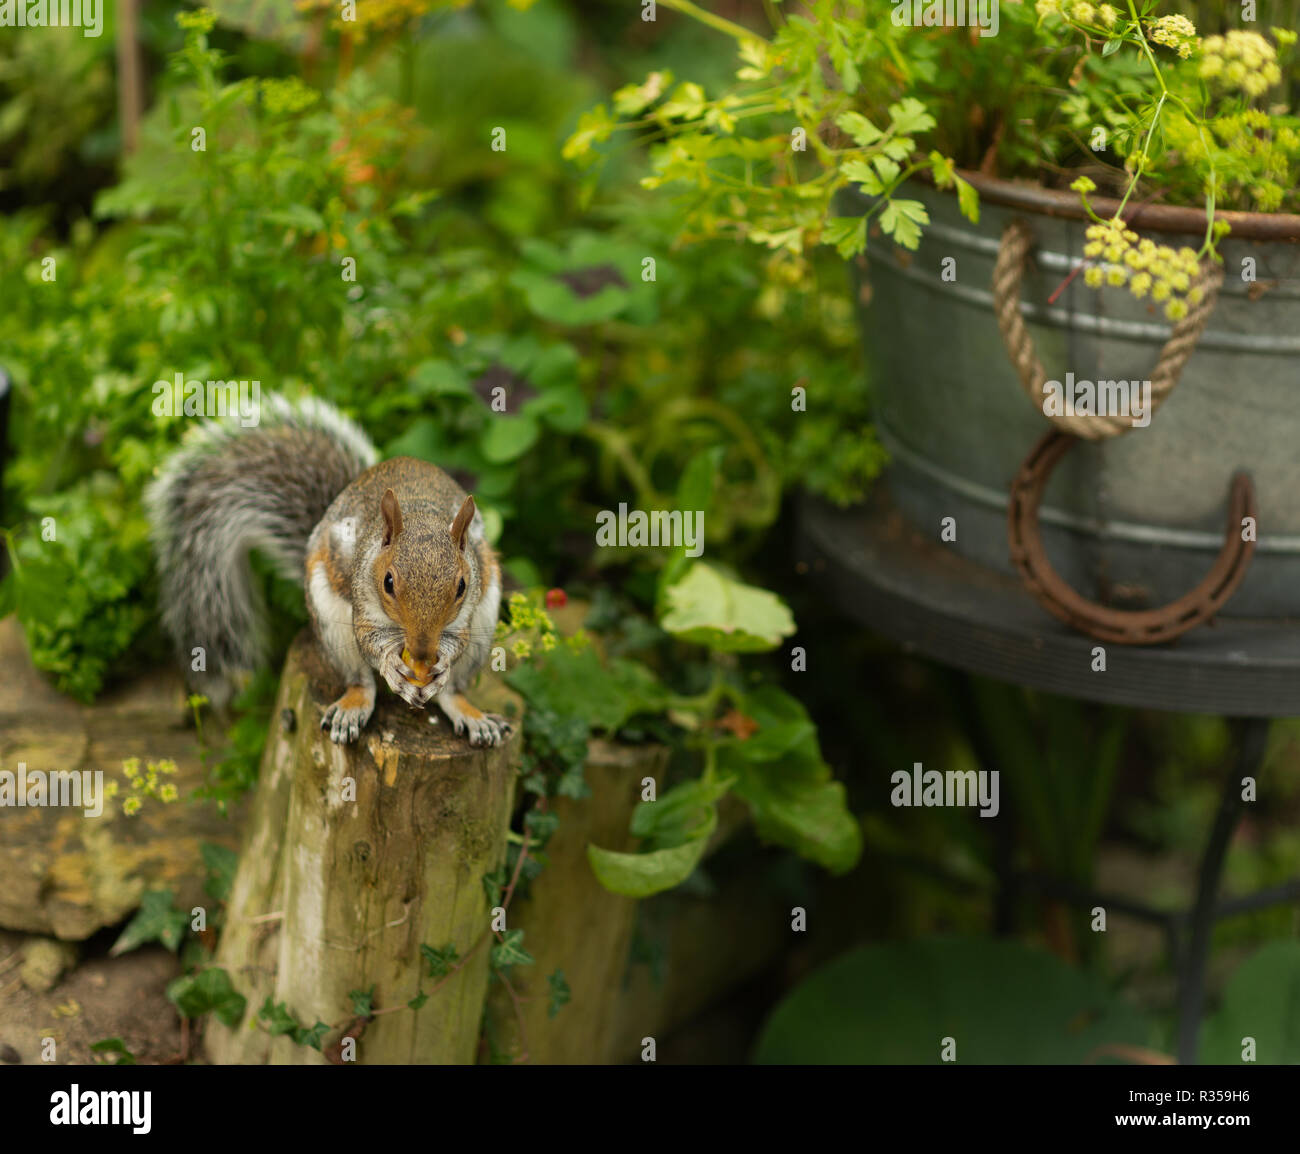 Fluffed up, plump, Grey squirrel sitting eating in a domestic garden beside a galvanised tub filled with parsley against a background of other herbs. - Stock Image